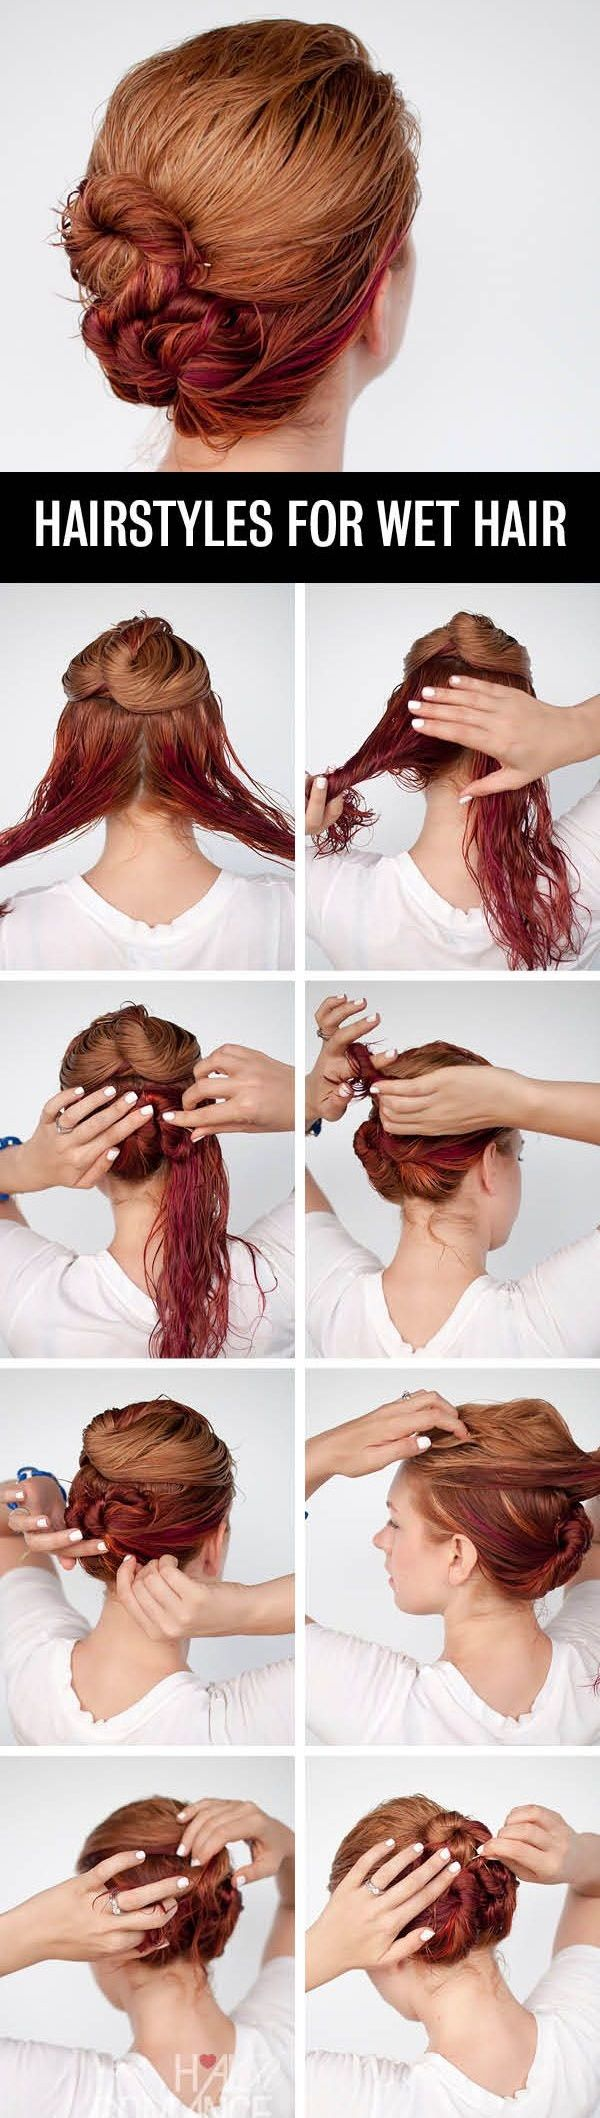 Stupendous 1000 Ideas About Wet Hair Dos On Pinterest Hair Dos Wet Hair Hairstyles For Men Maxibearus